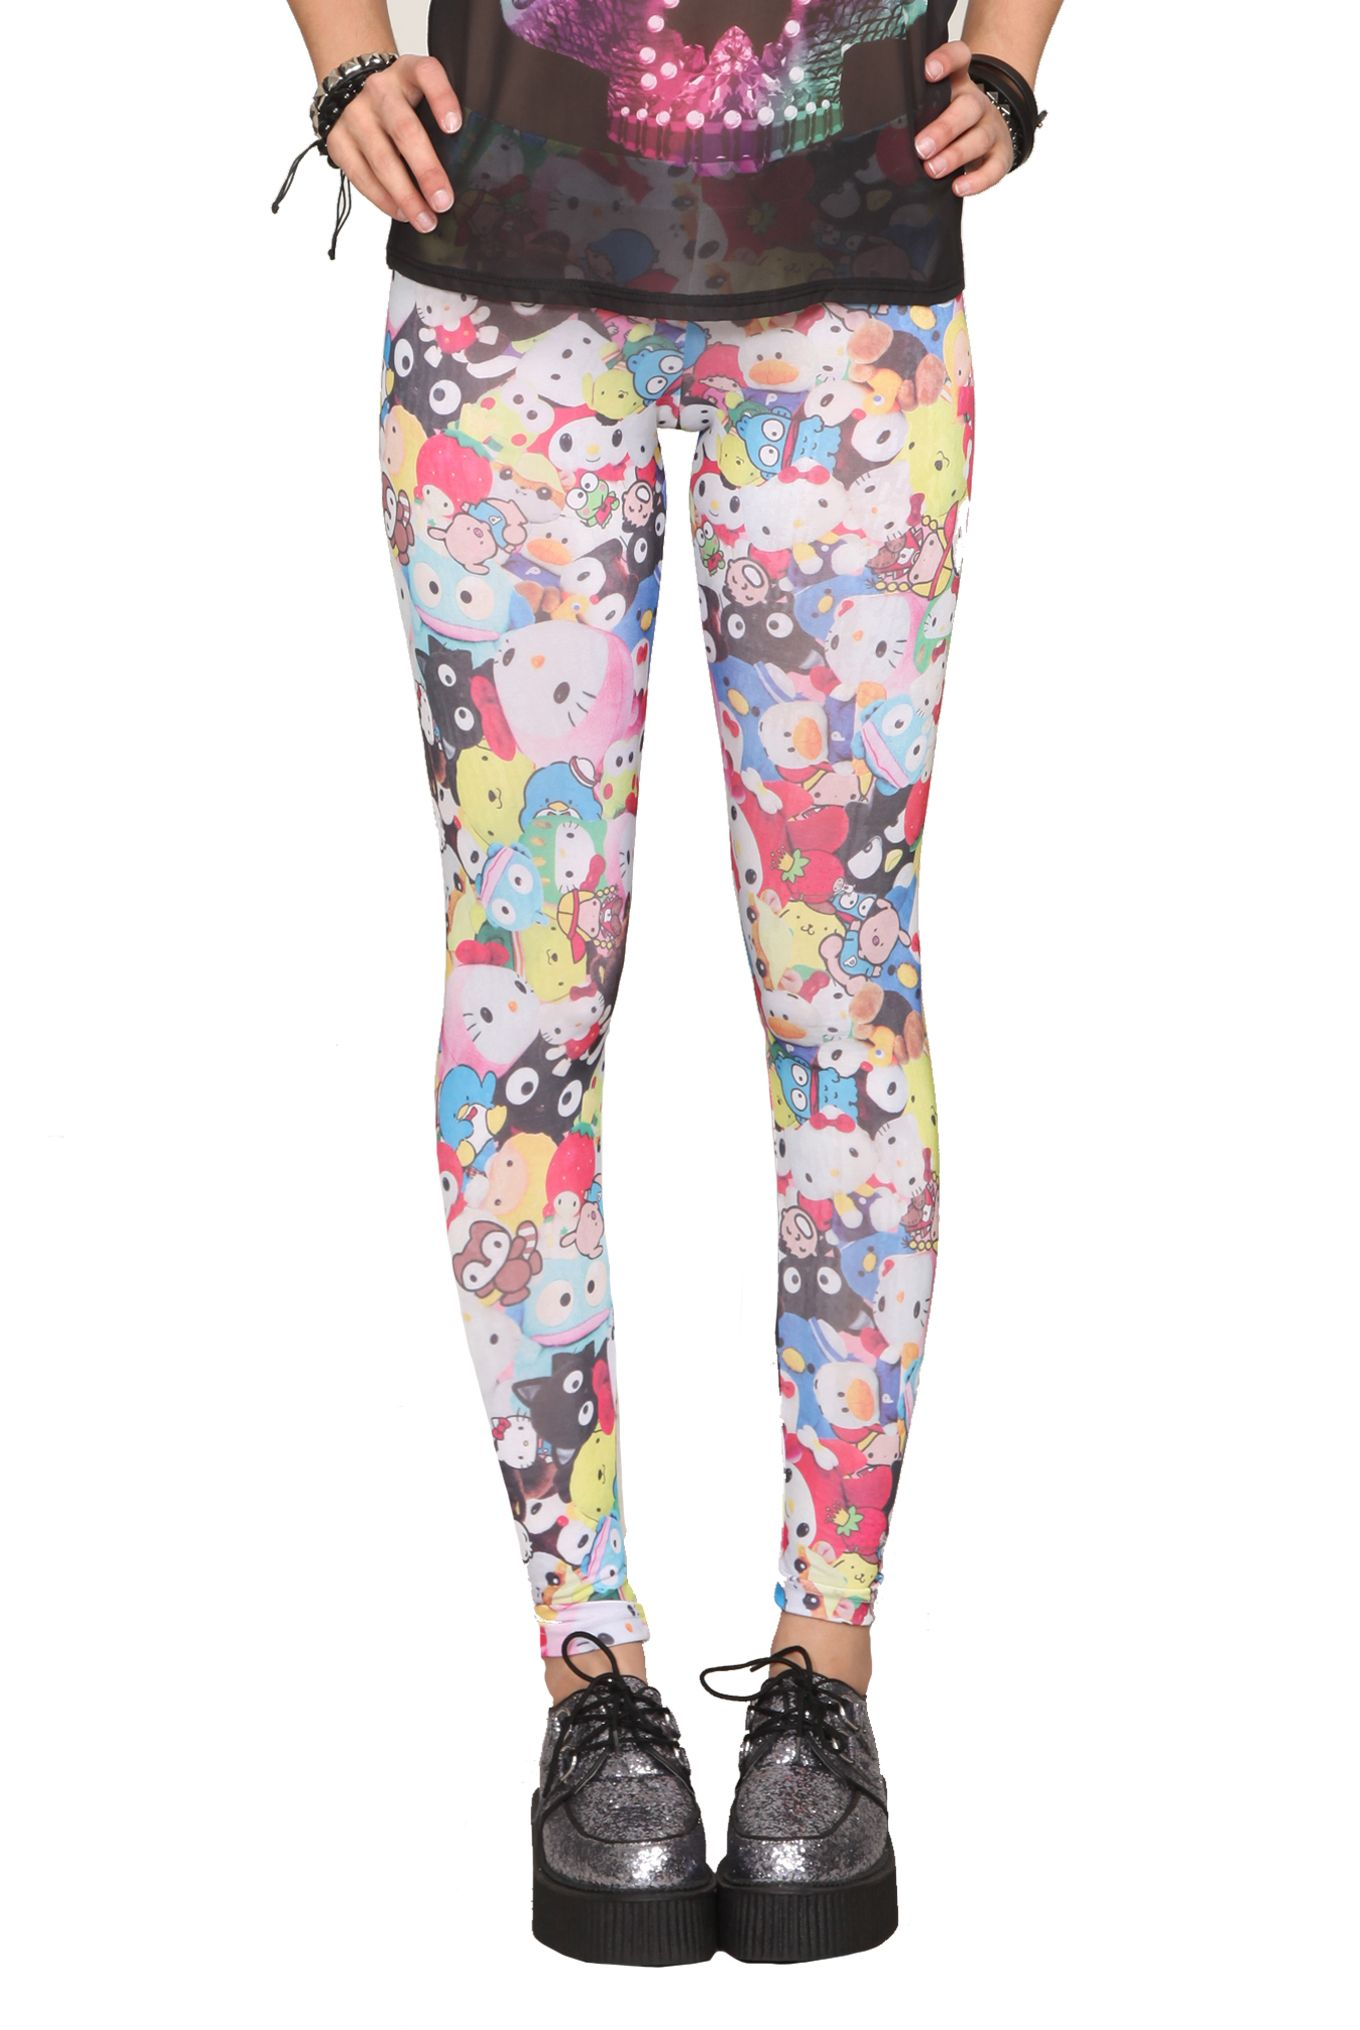 bbb82c154 Hot Topic leggings with all your favorite characters from the Sanrio  universe.